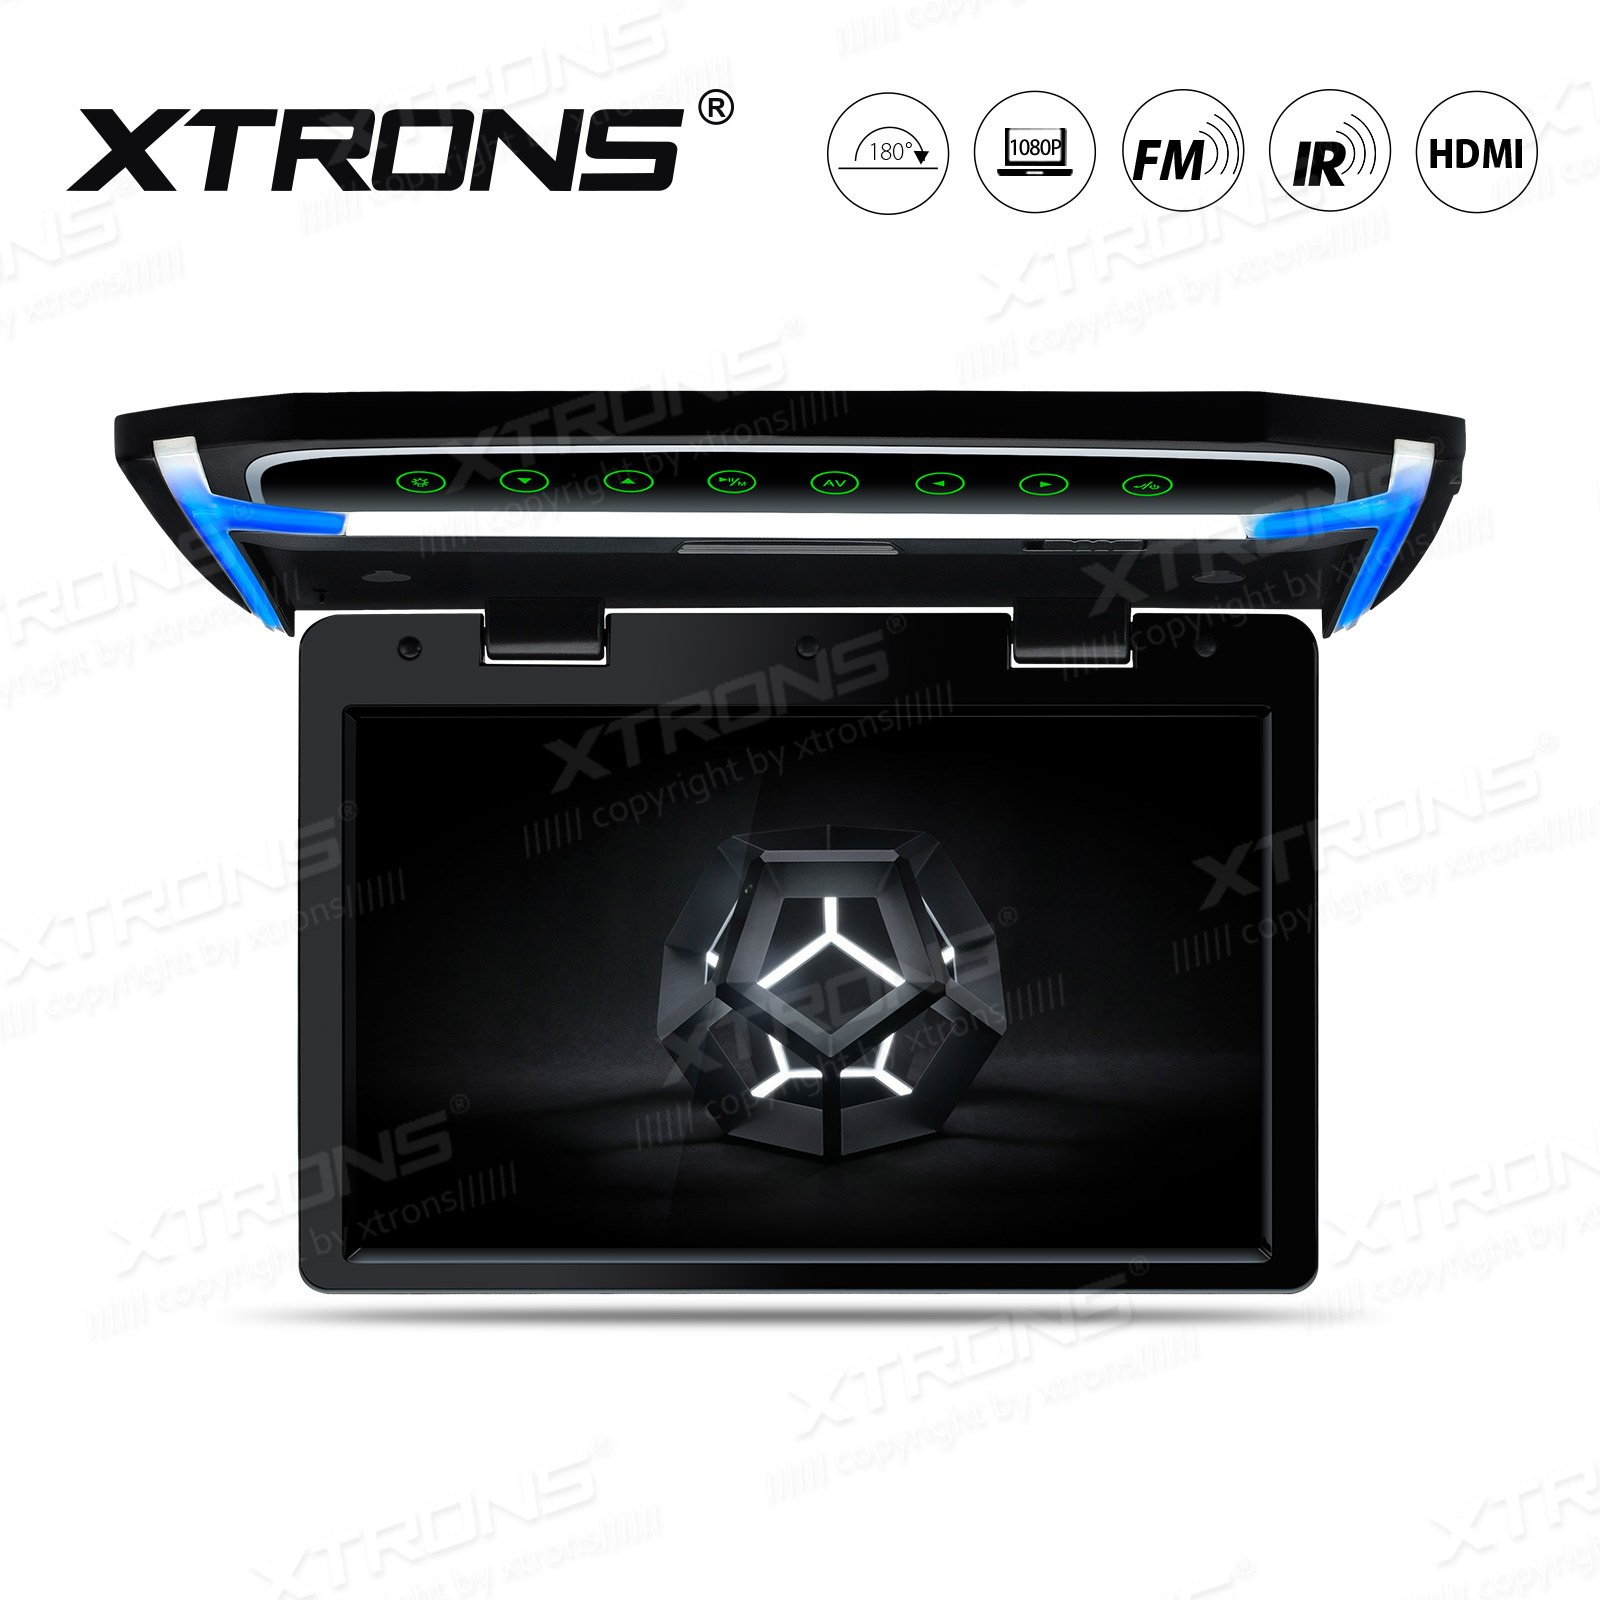 XTRONS 10.2 Inch Digital TFT Screen 1080P Video Car Overhead Player Roof Mounted Monitor HDMI Port by XTRONS